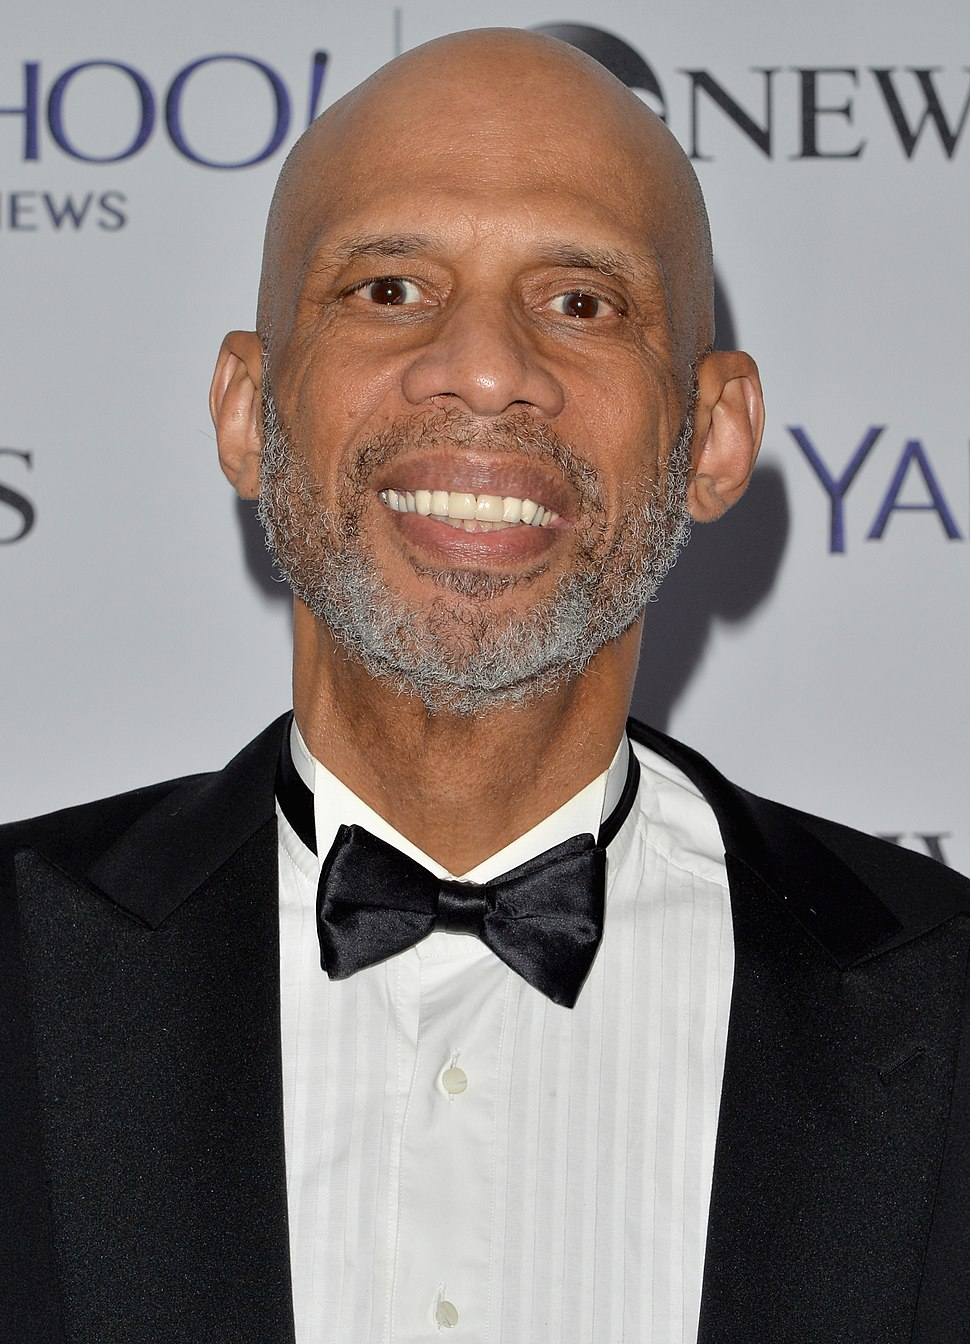 Kareem Abdul-Jabbar May 2014